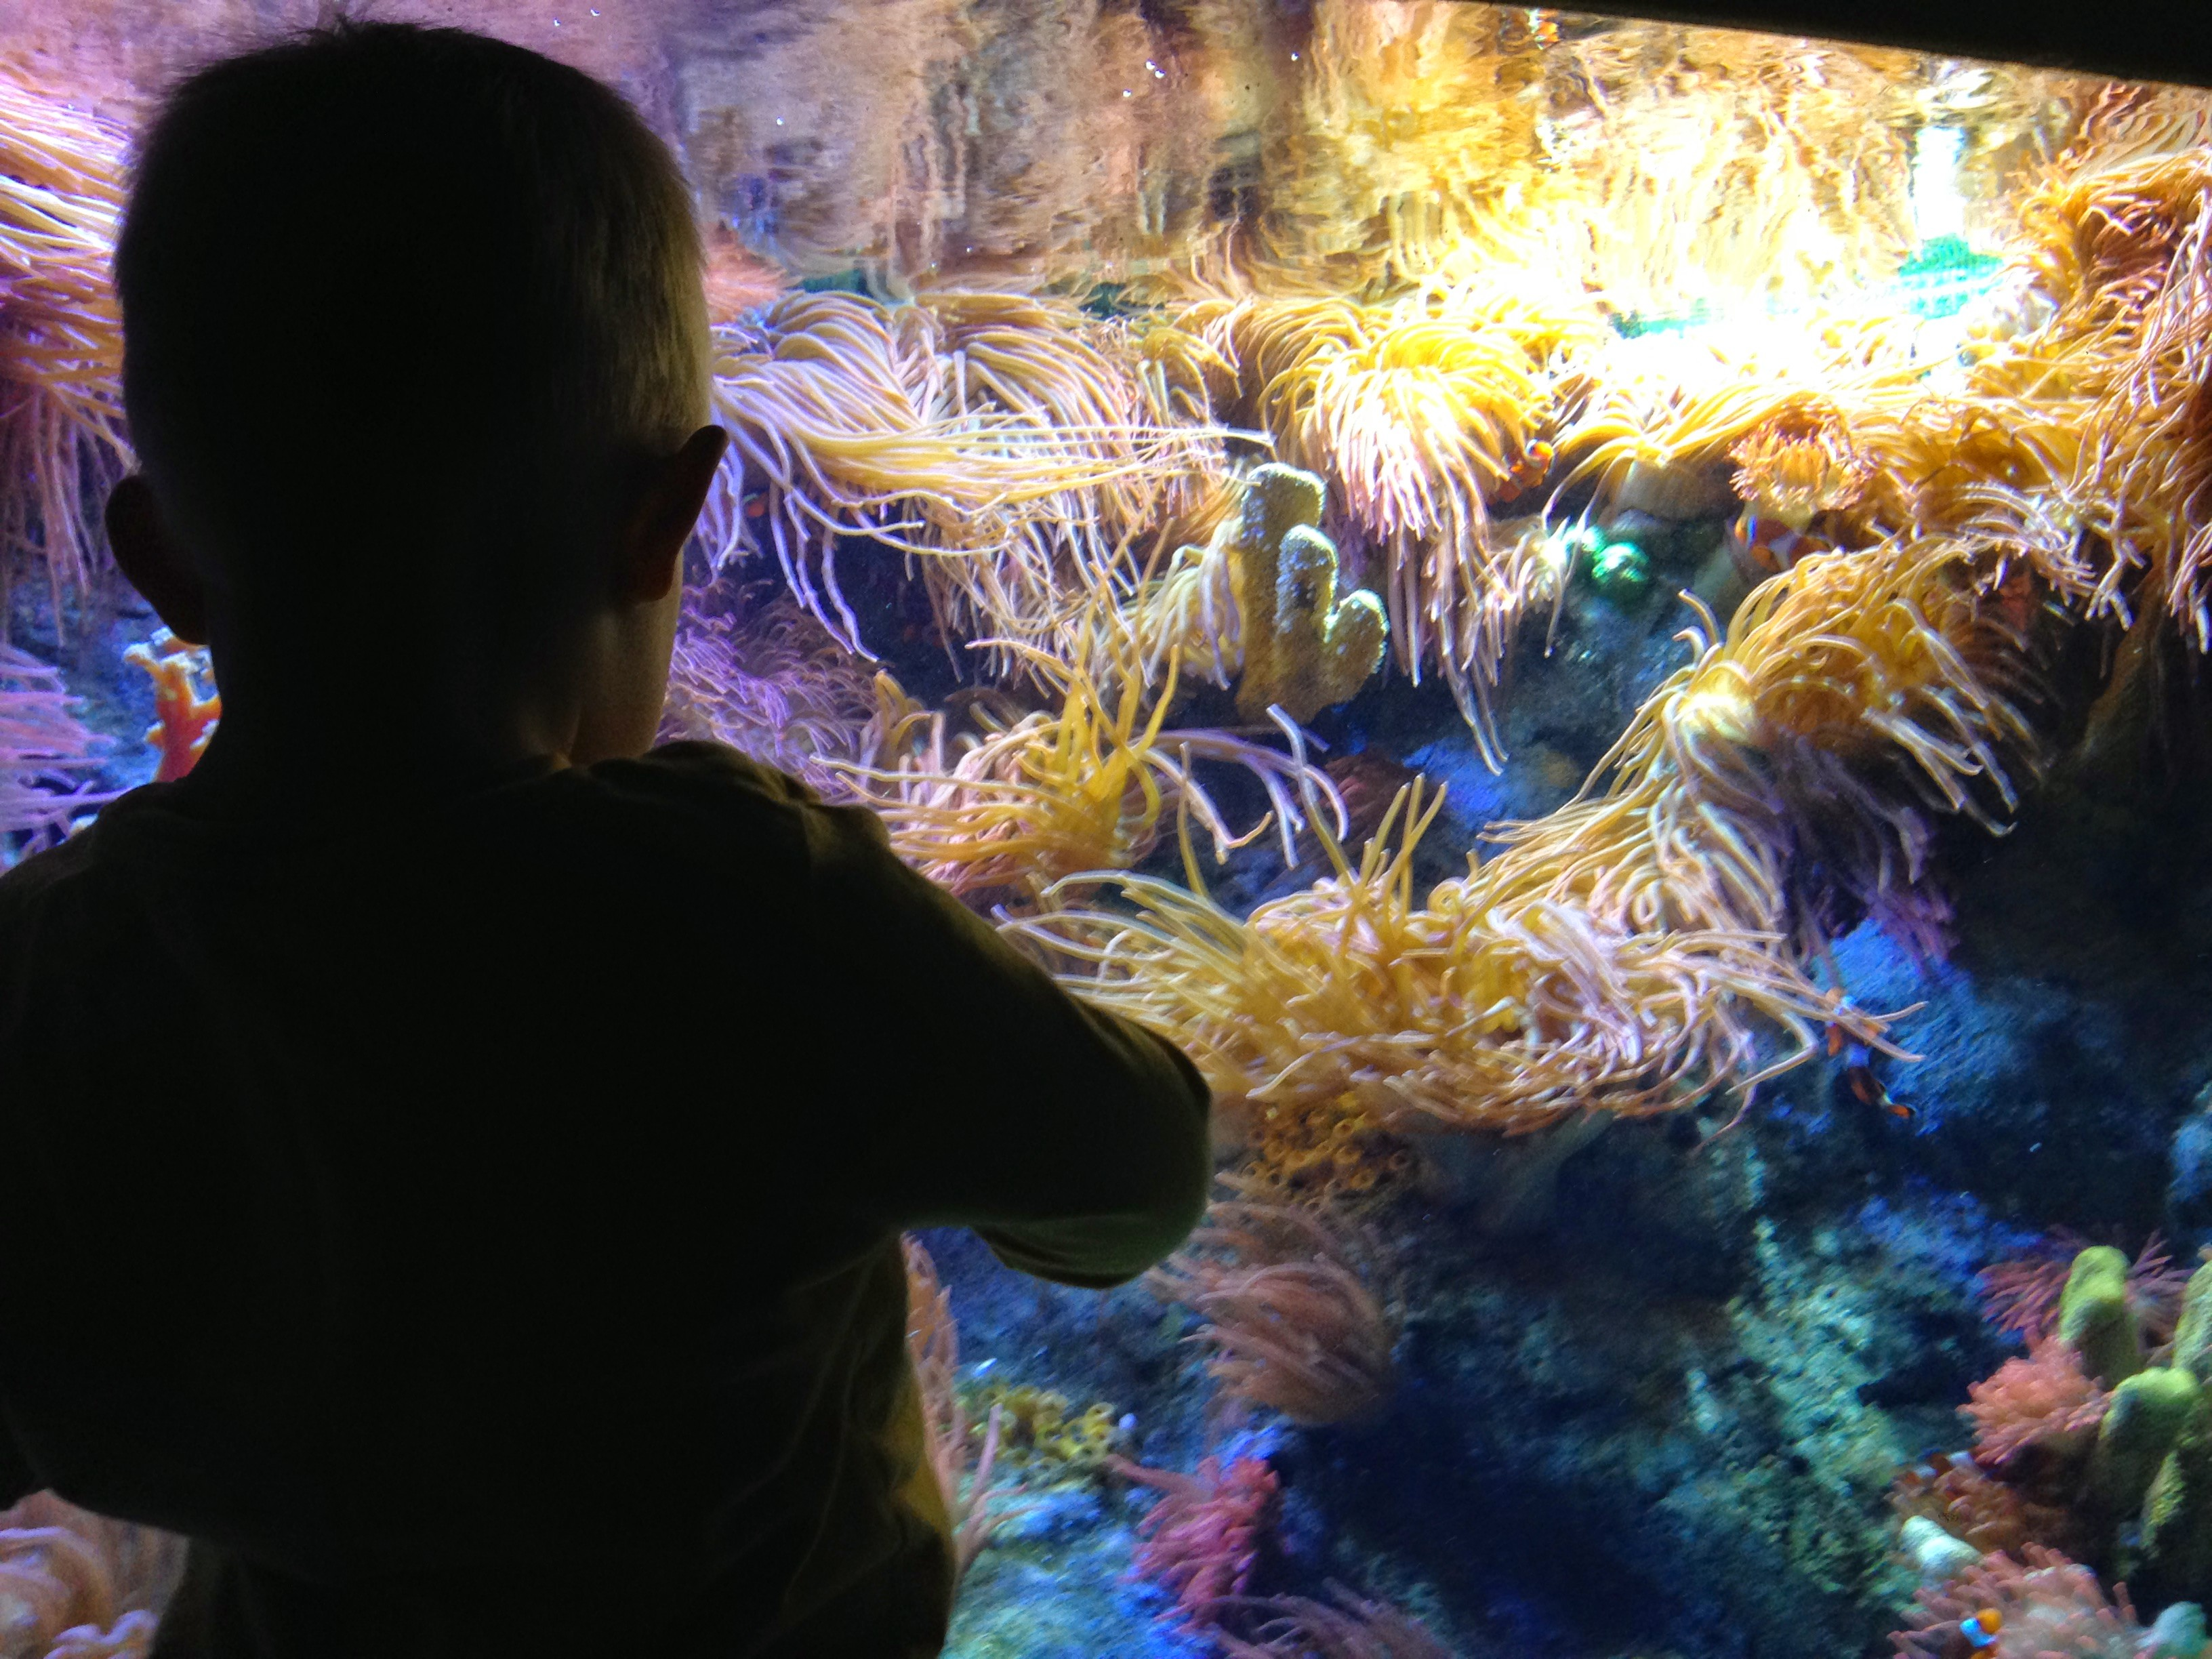 Day out with a toddler at national marine aquarium in Plymouth